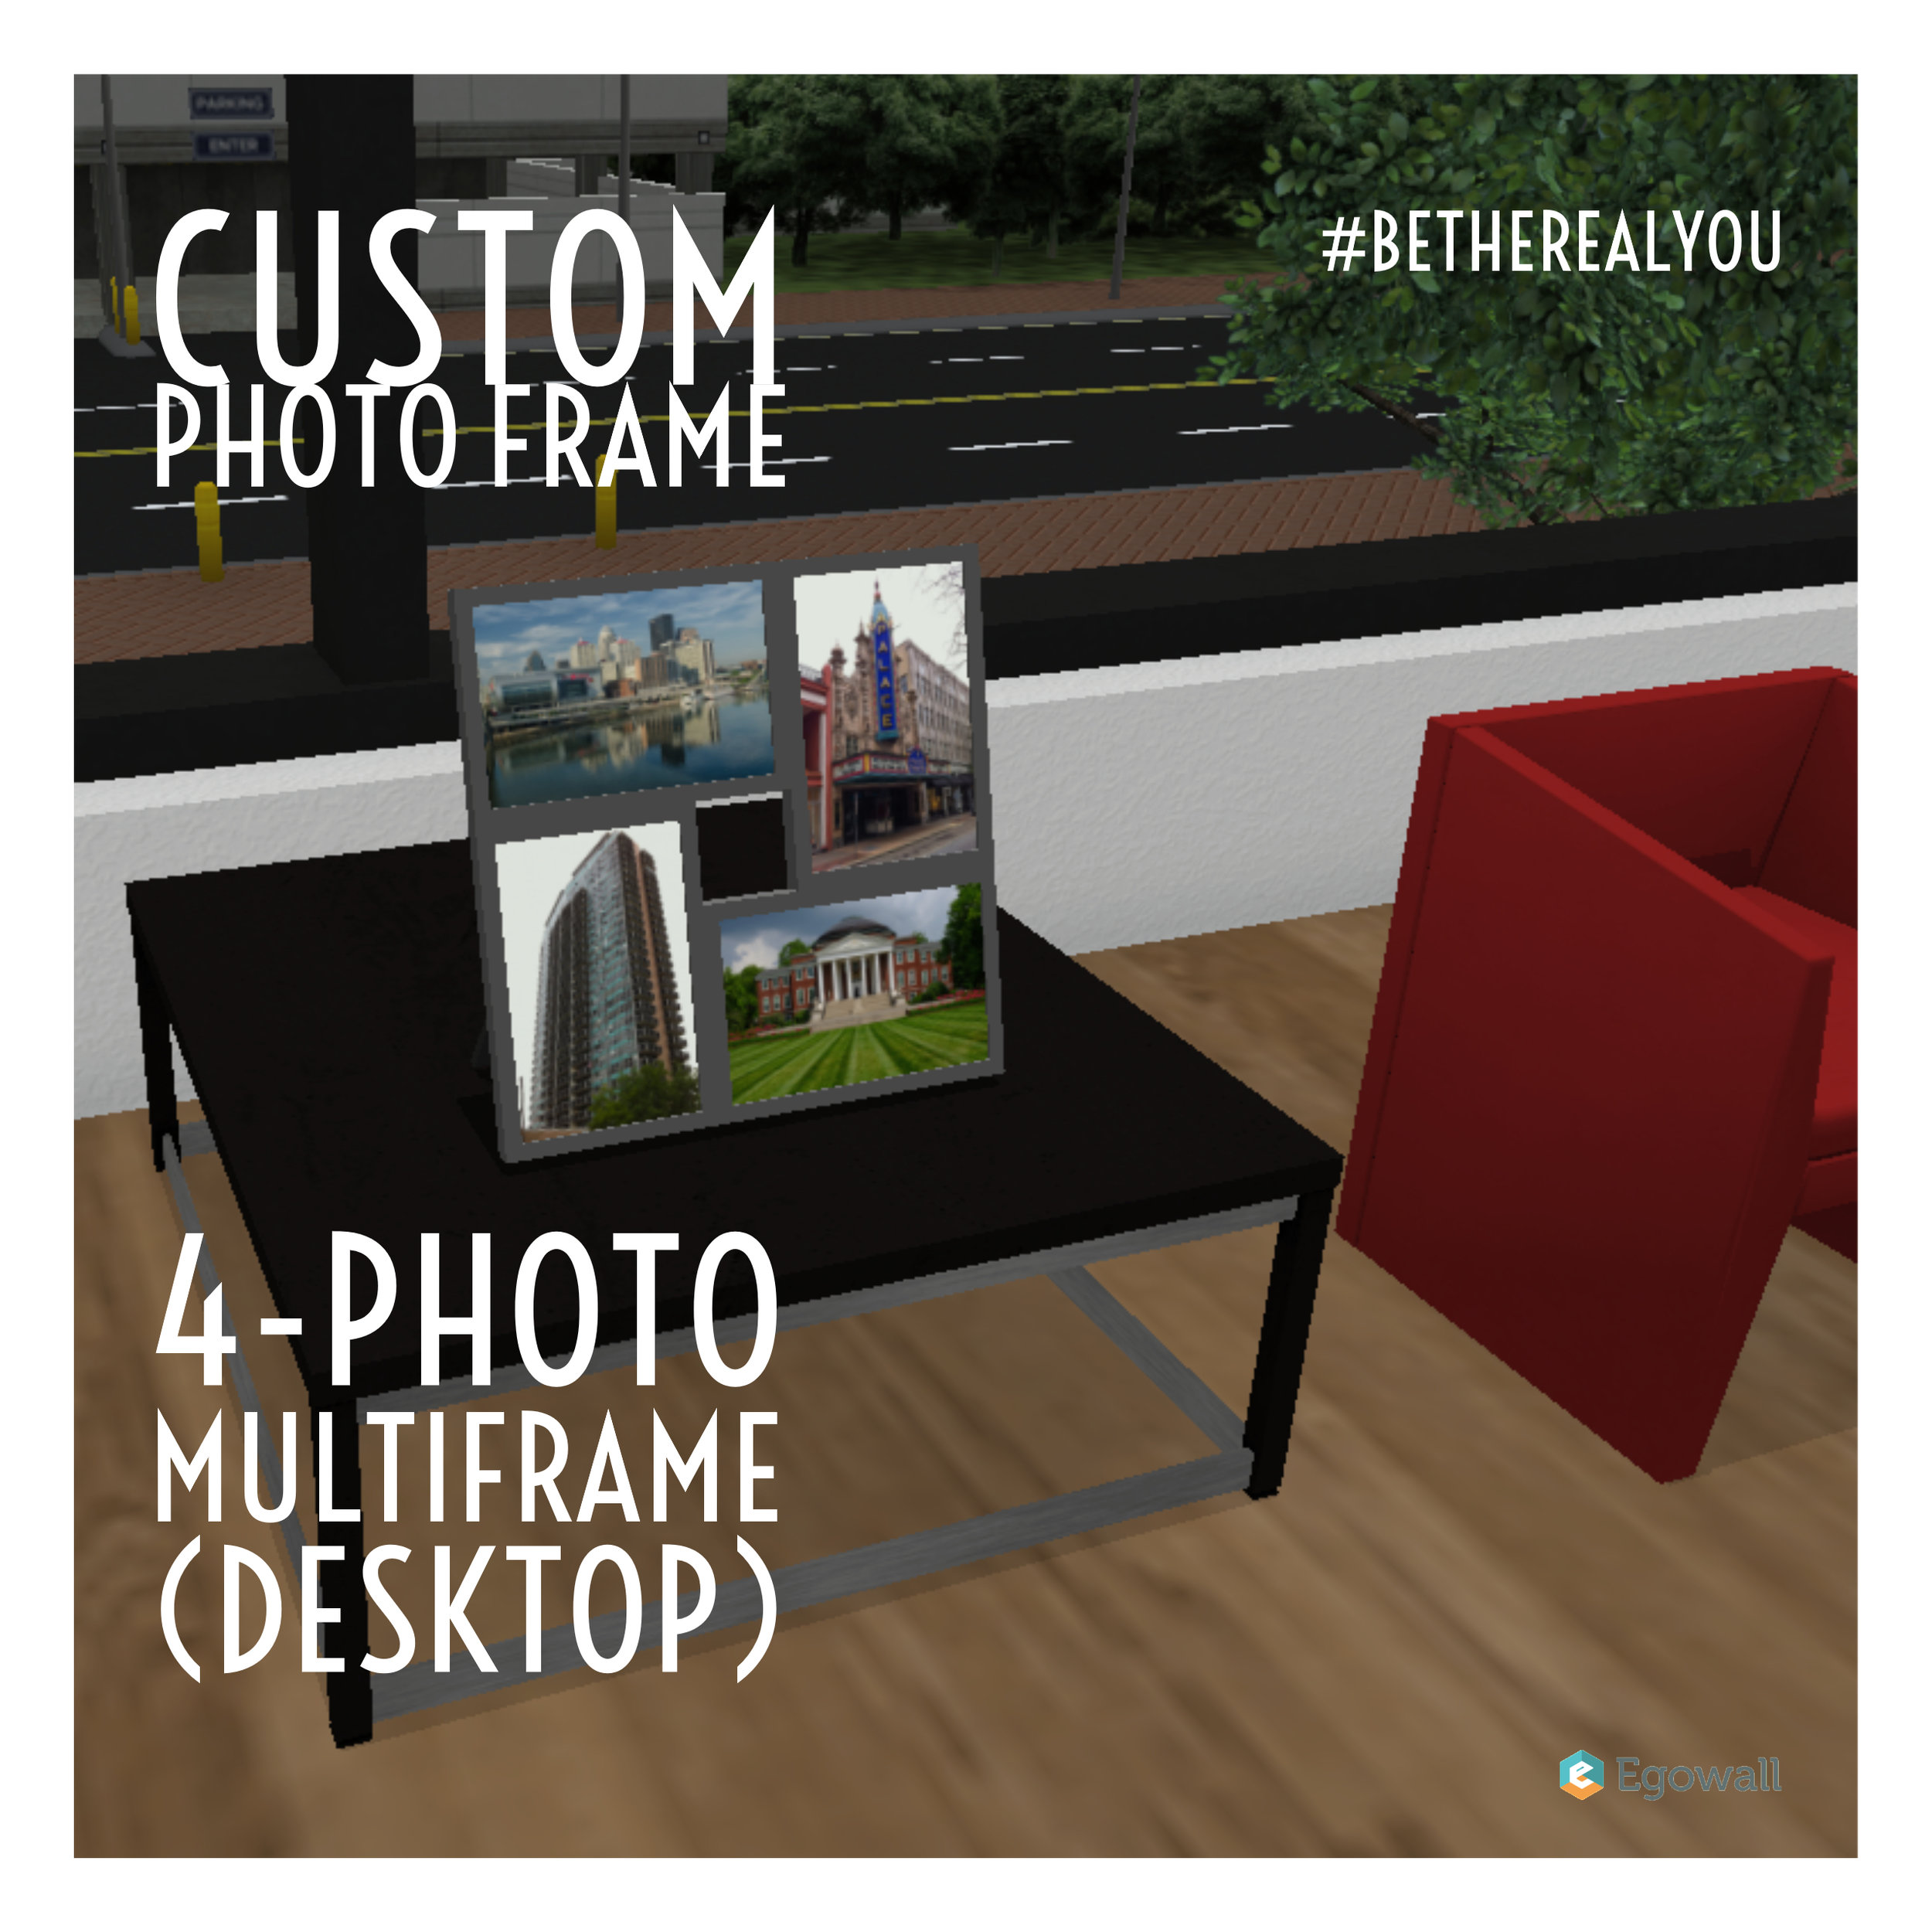 4-Photo Multiframe (Desktop).Instagram.jpg